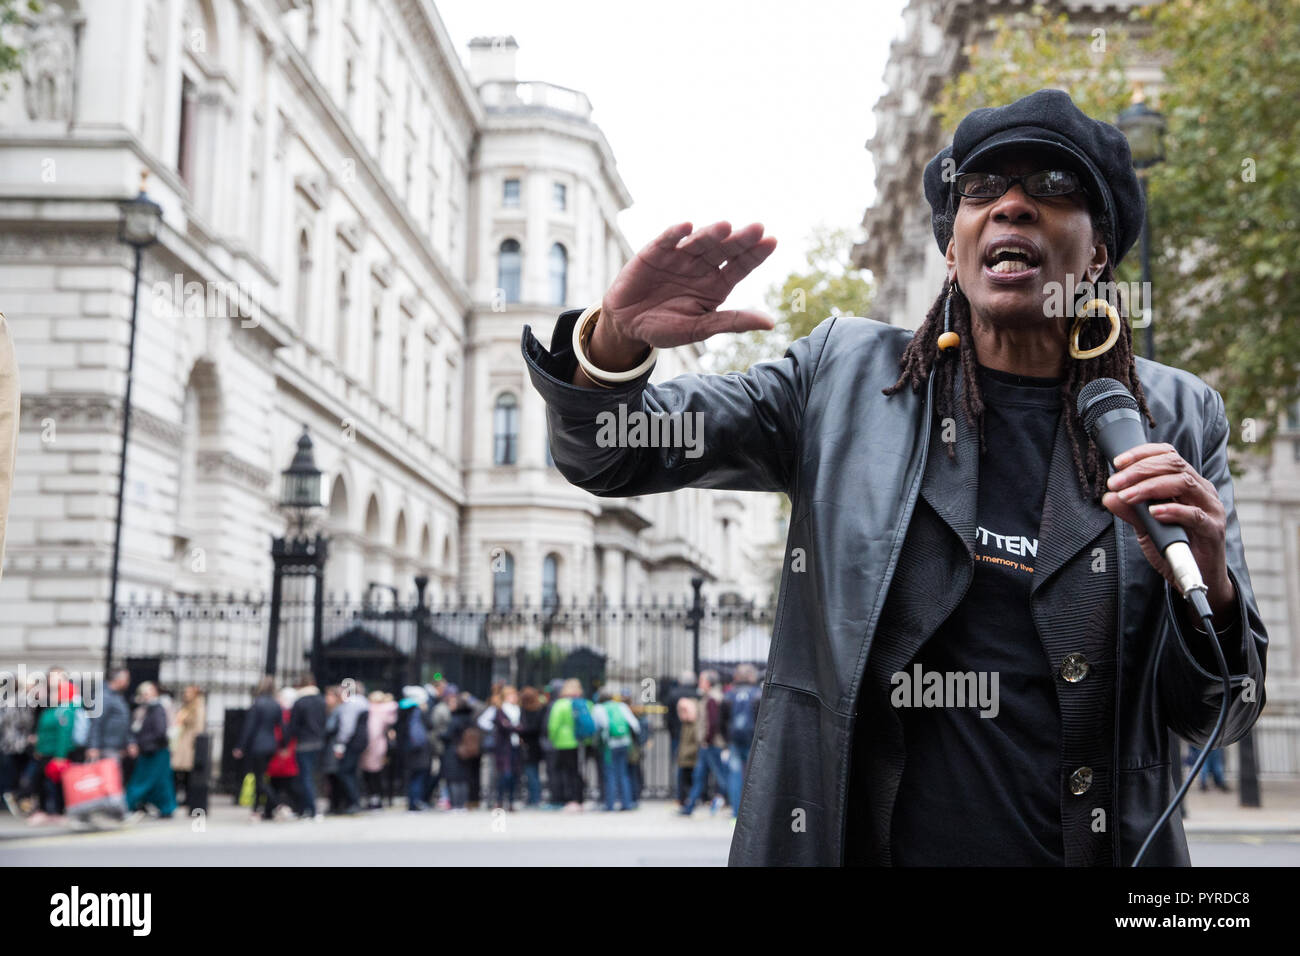 London, UK. 27th October, 2018. Marcia Rigg, sister of Sean Rigg, addresses campaigners from the United Families and Friends Campaign. - Stock Image